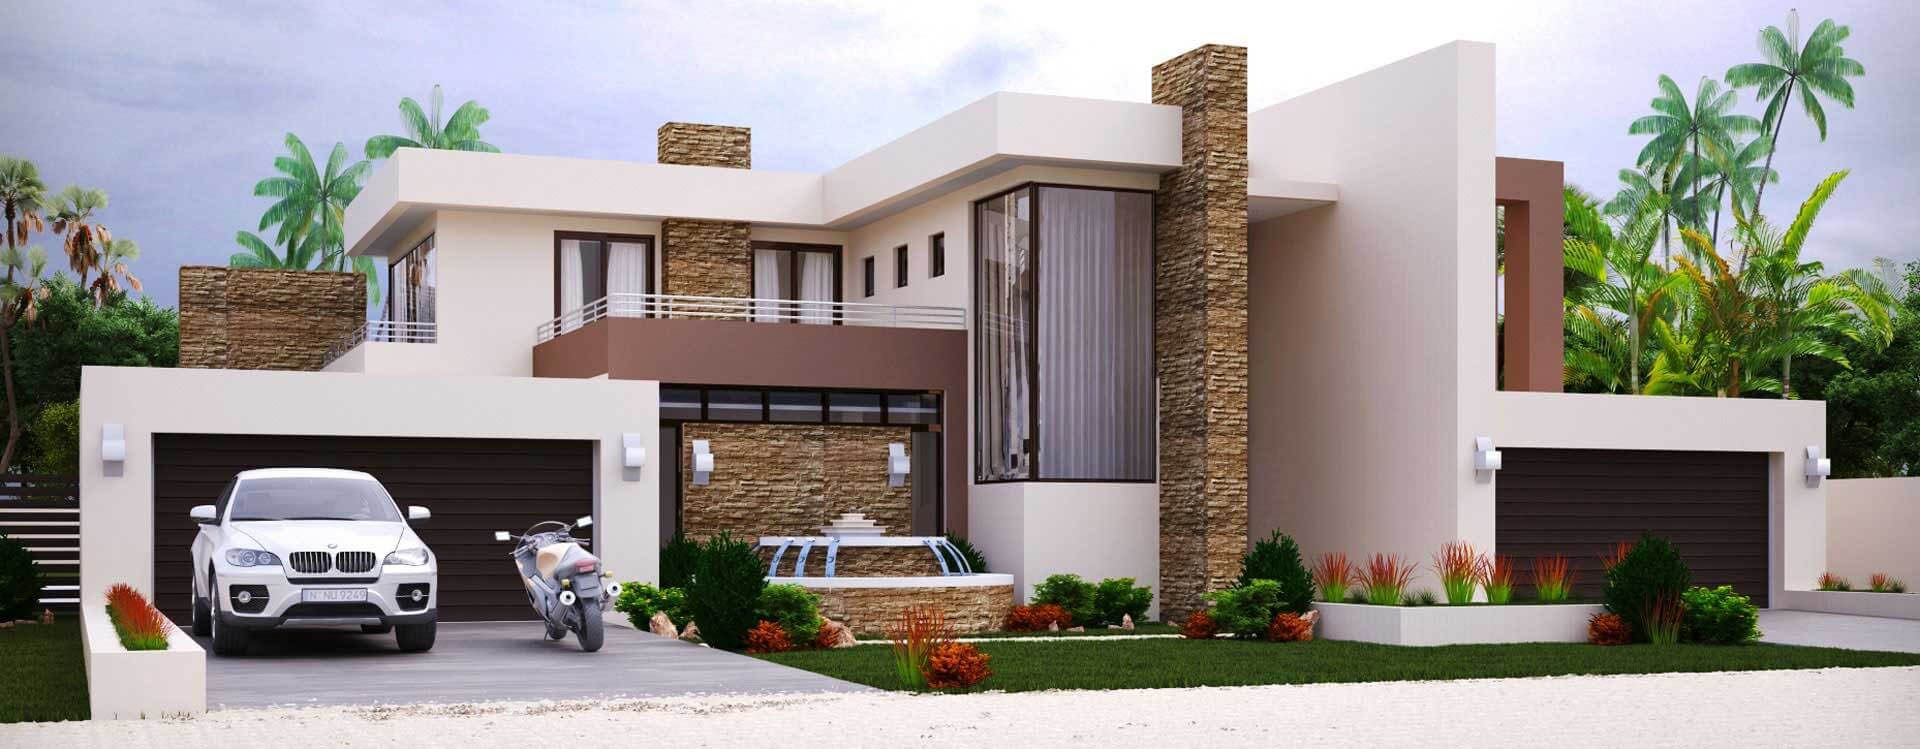 house plans south africa 4 bedroom house plans nethouseplans